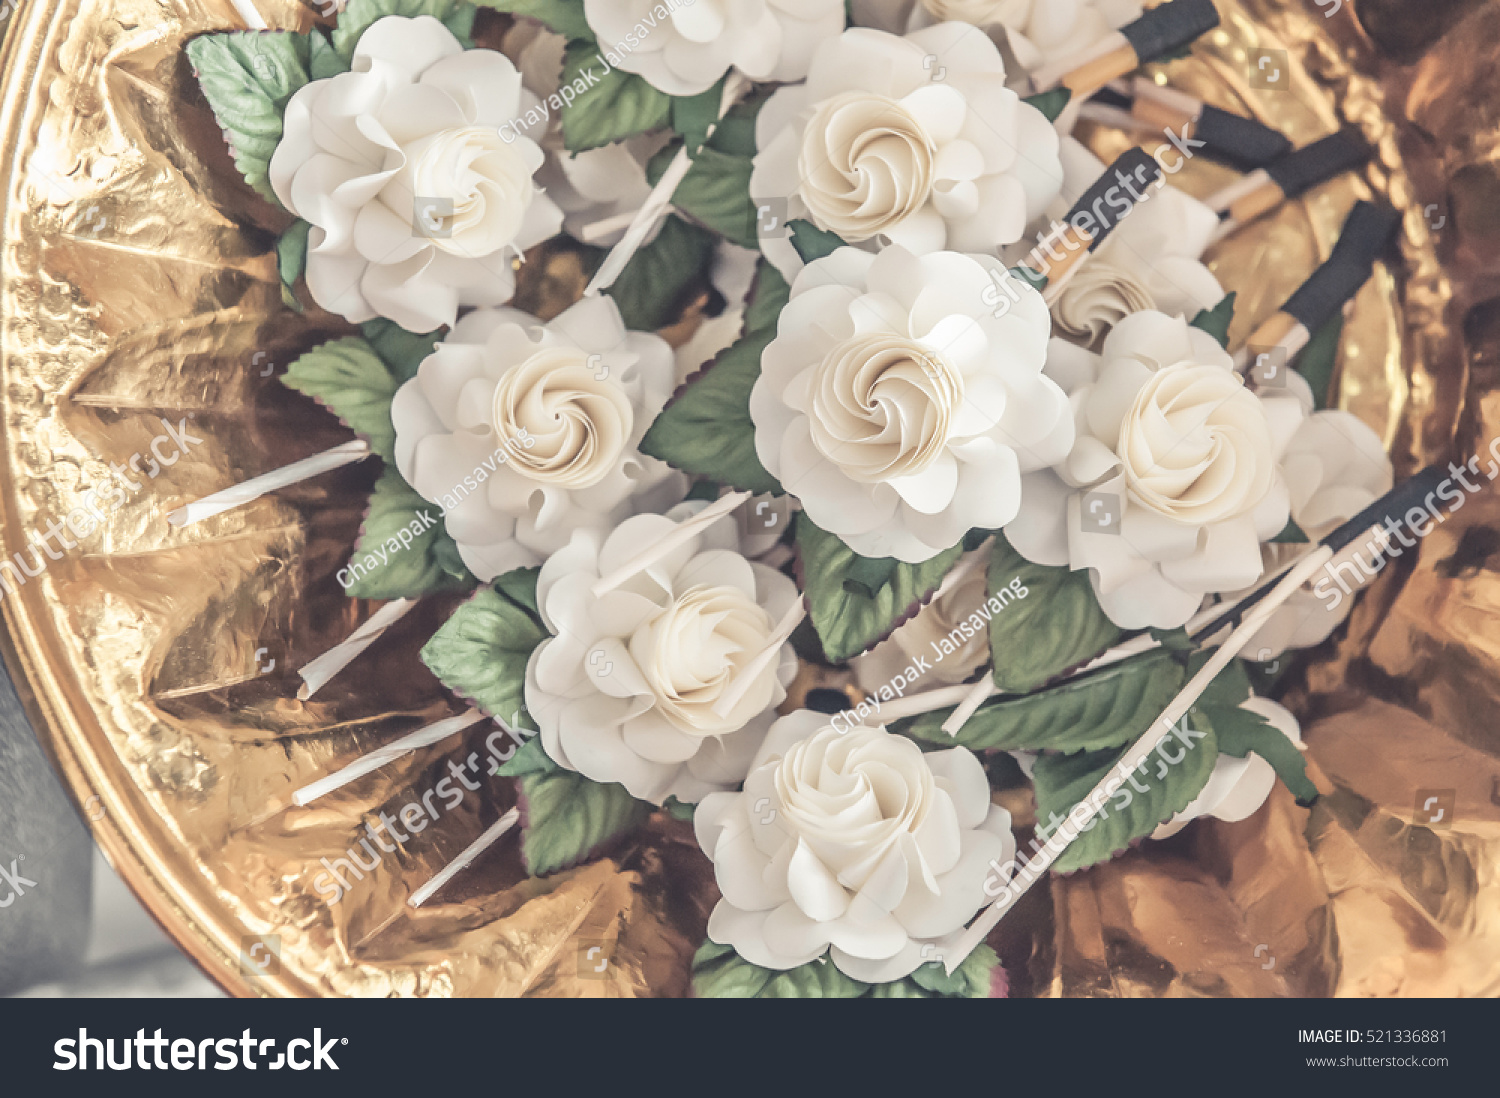 Artifical flowers used during funeral kind stock photo 521336881 artifical flowers used during funeral kind stock photo 521336881 shutterstock izmirmasajfo